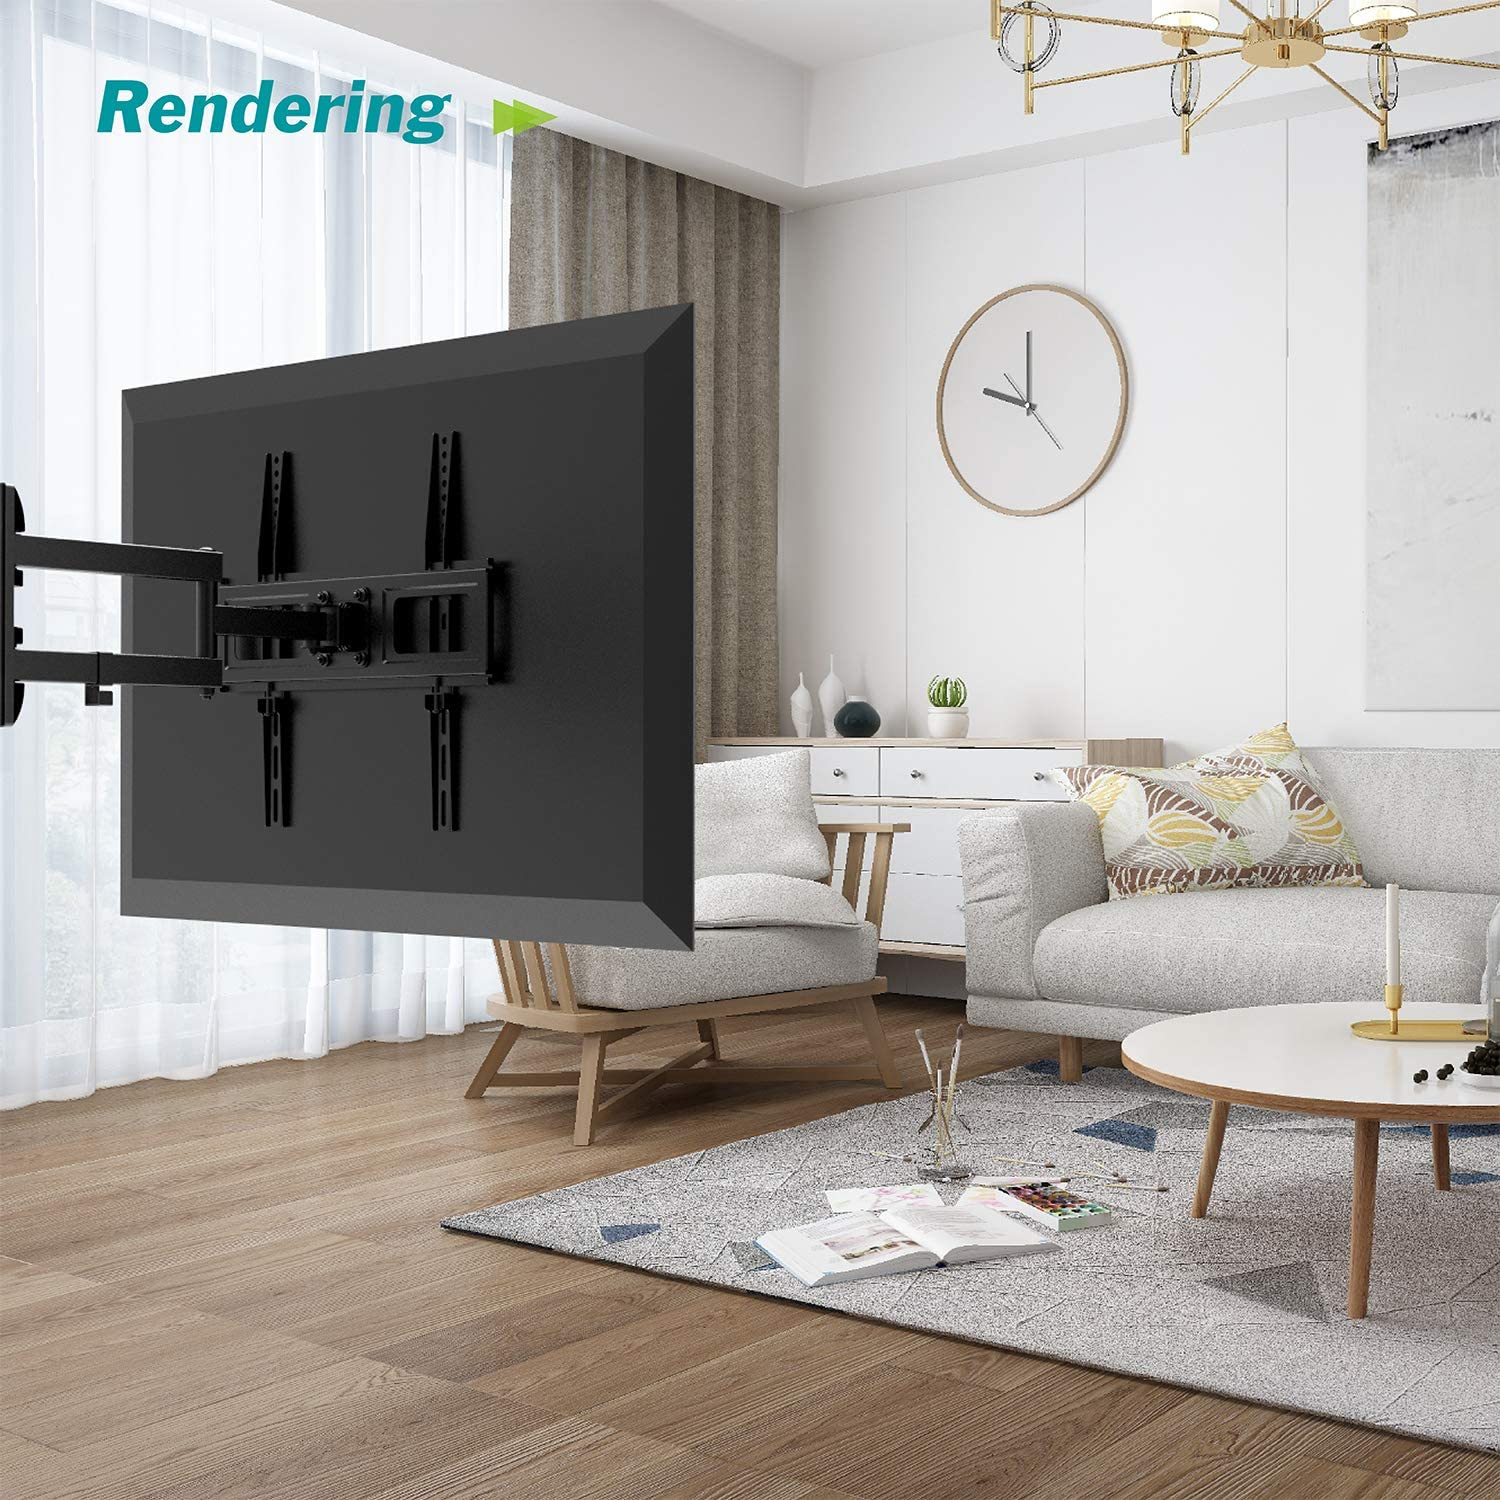 Swivel/&Extend TV Mount LCD Charmount TV Wall Mount with Swivel Articulating Arm Full Motion TV Mounting Bracket for Most 26-55 Inch LED OLED Plasma Flat Screen TV up to 88 lbs VESA 400x400mm